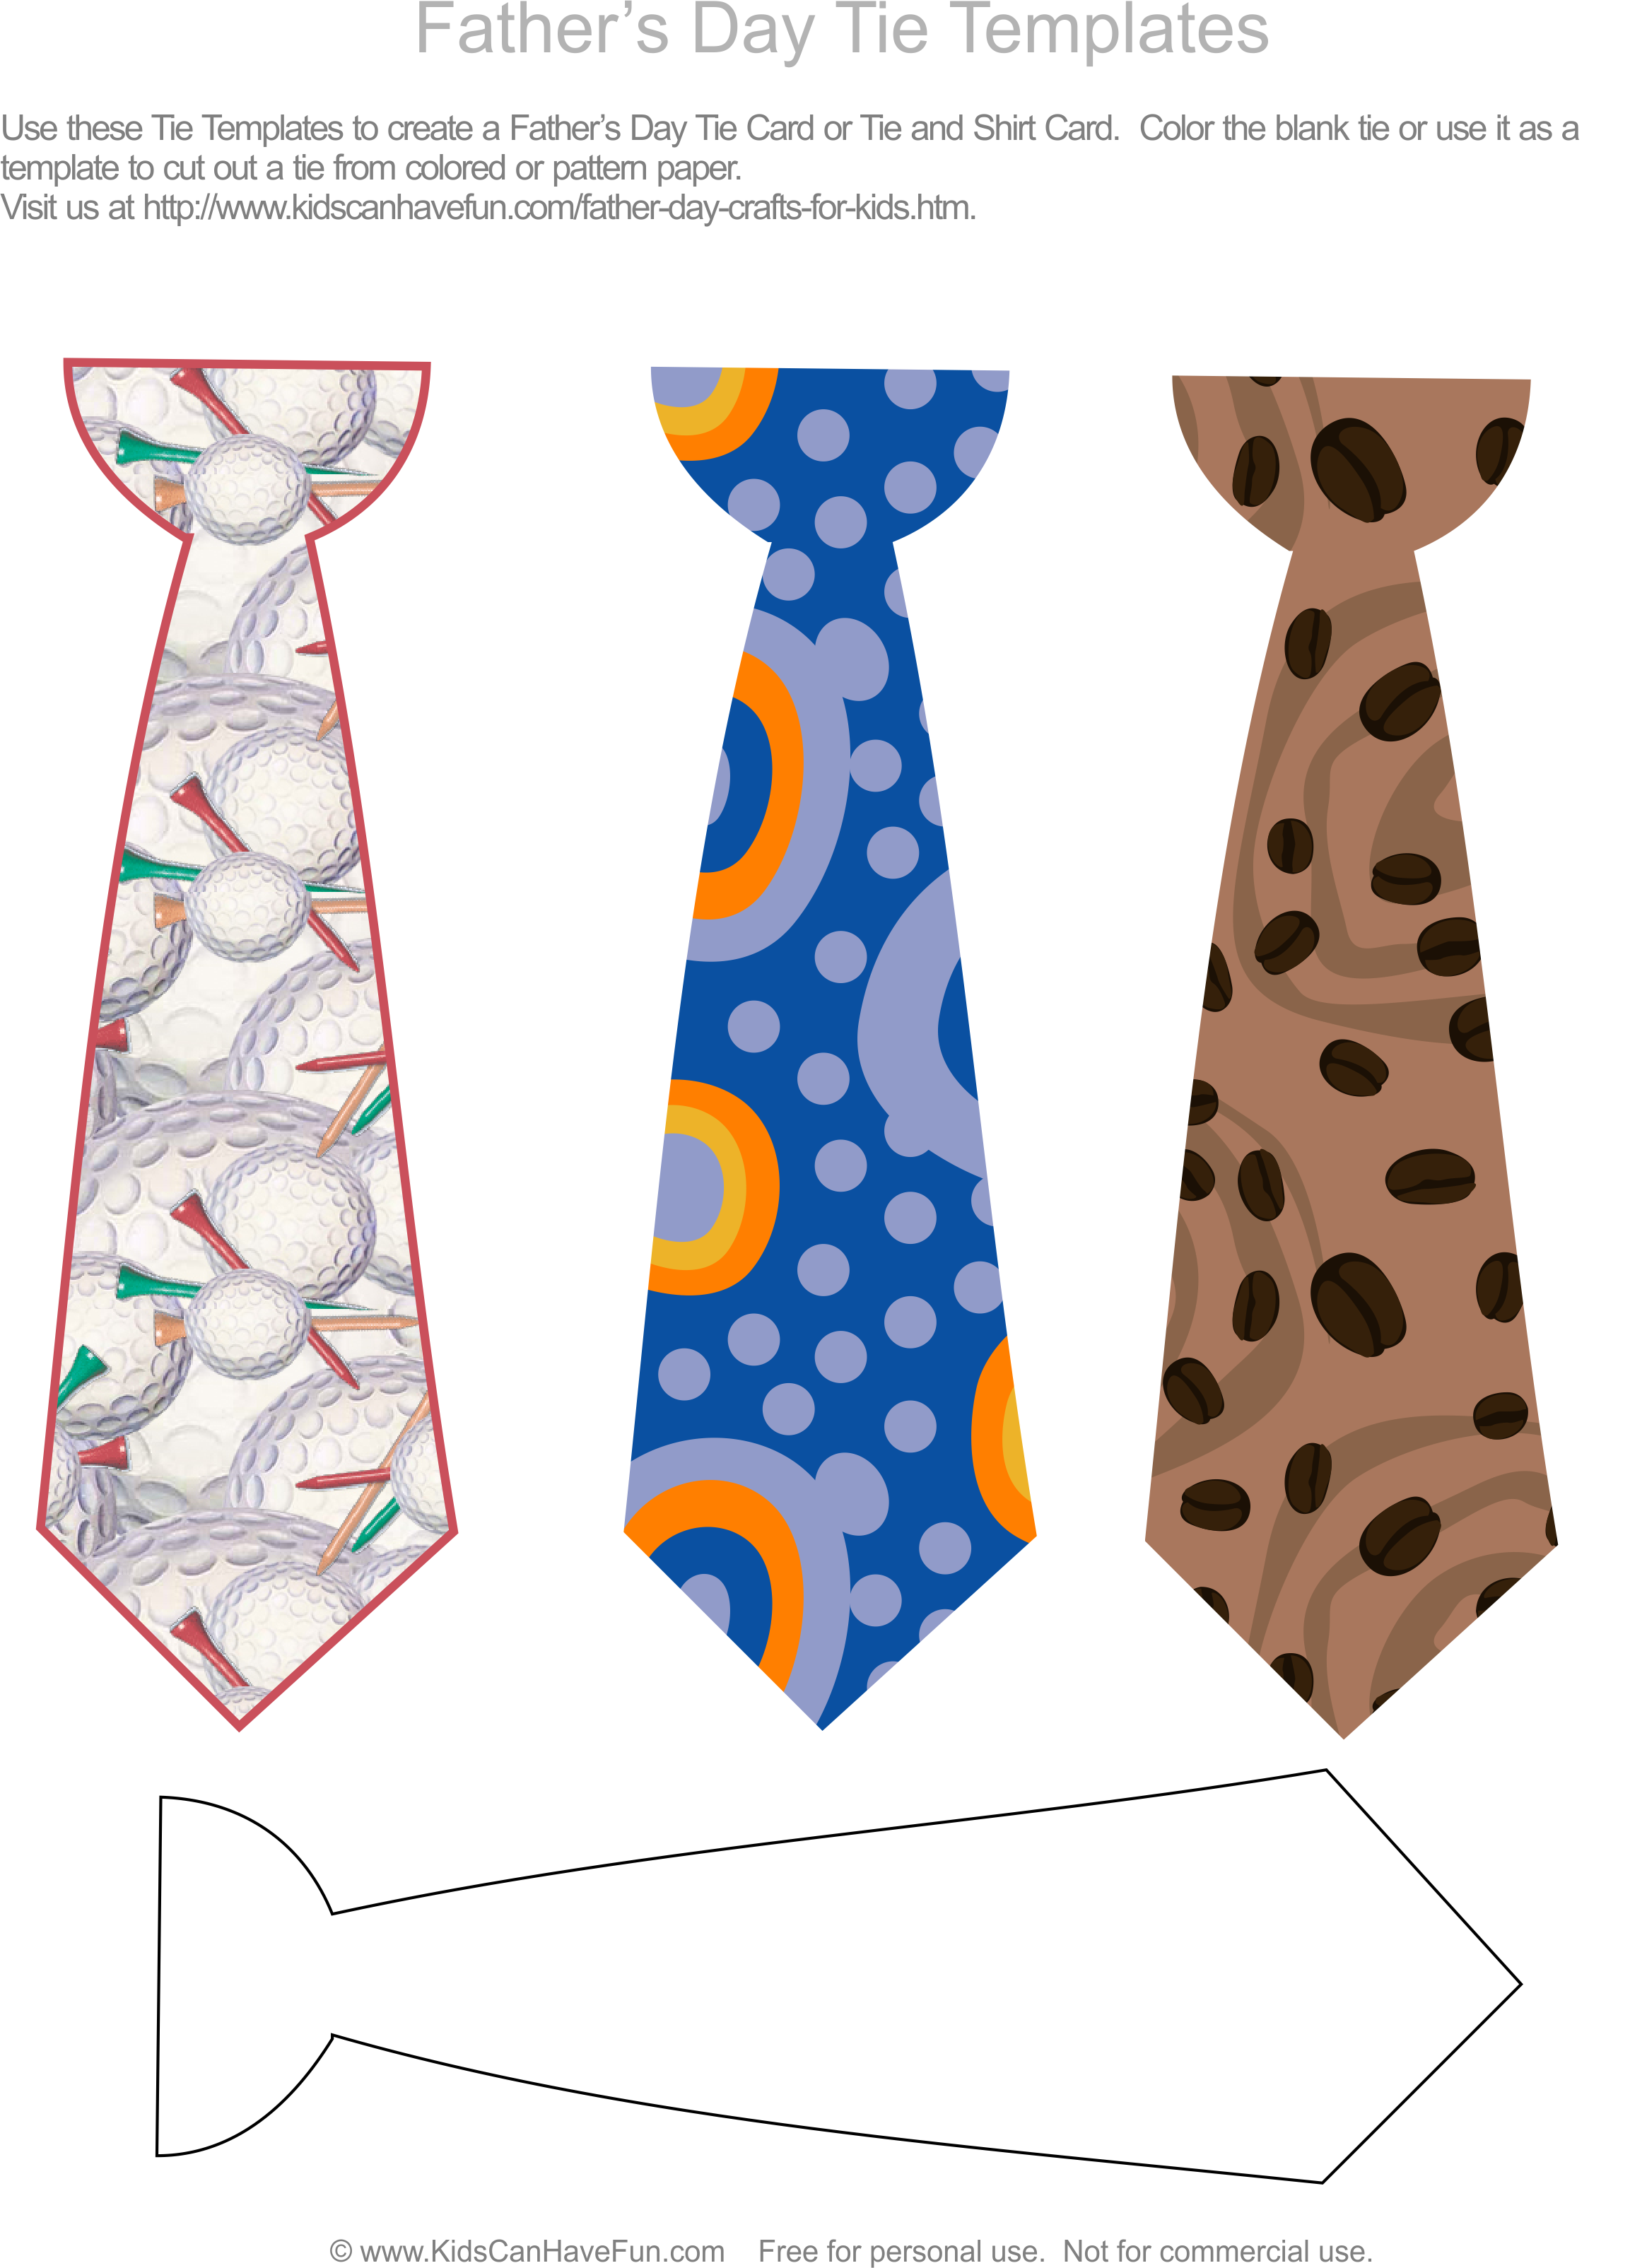 Fathersday Tie Templates For Diy Cards And Crafts